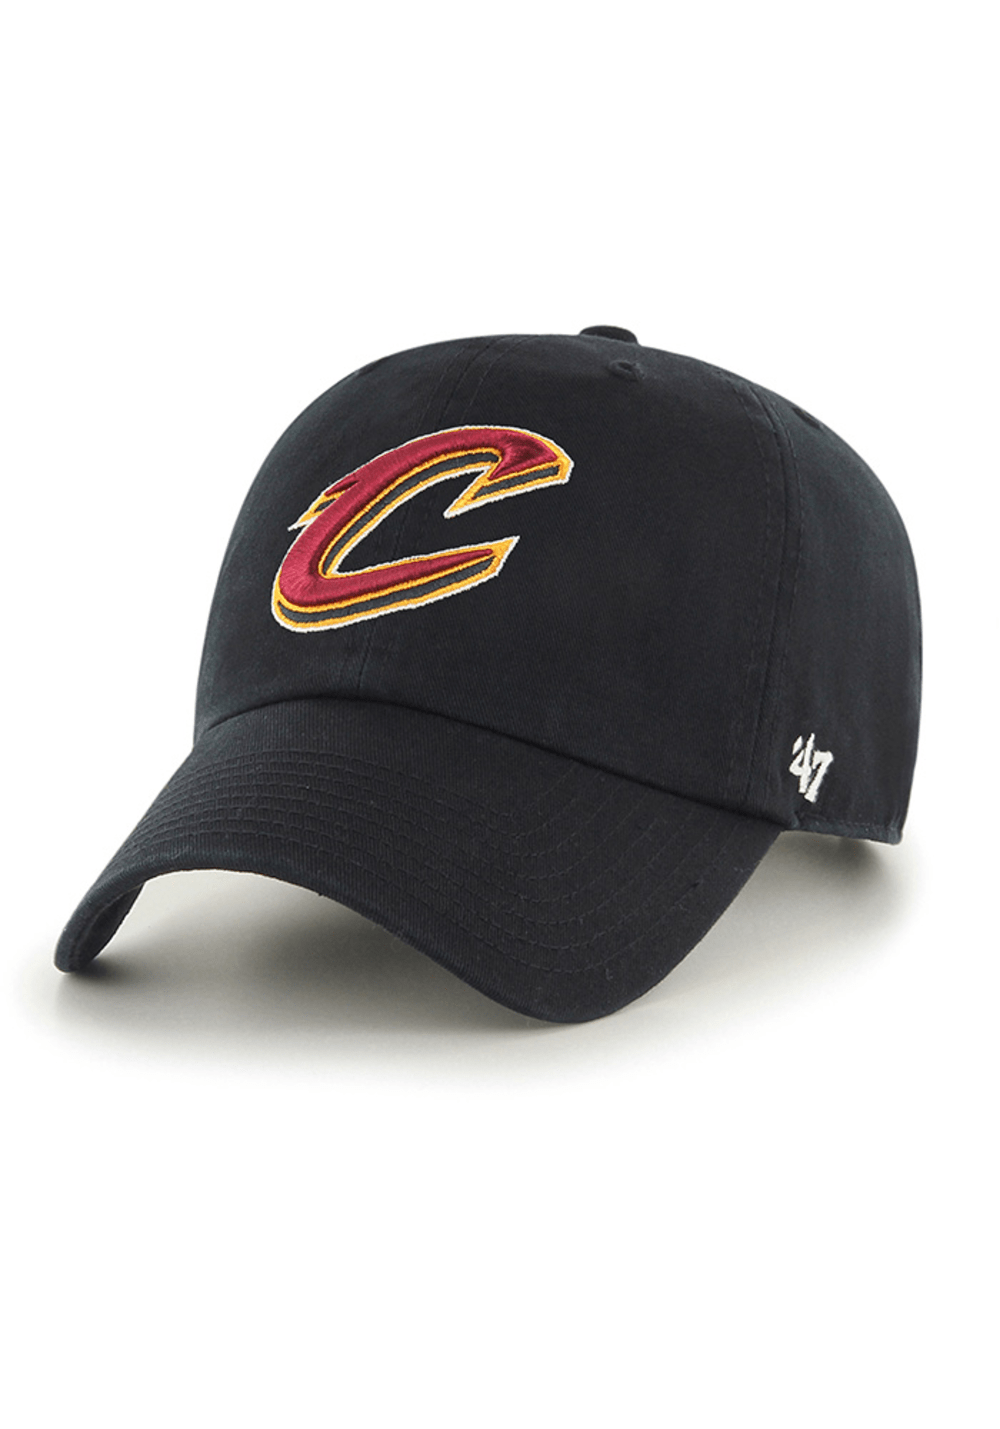 47 Brand Hats One Size / Black Cleveland Cavaliers 47 Brand Clean up Adjustable Hat - Black,